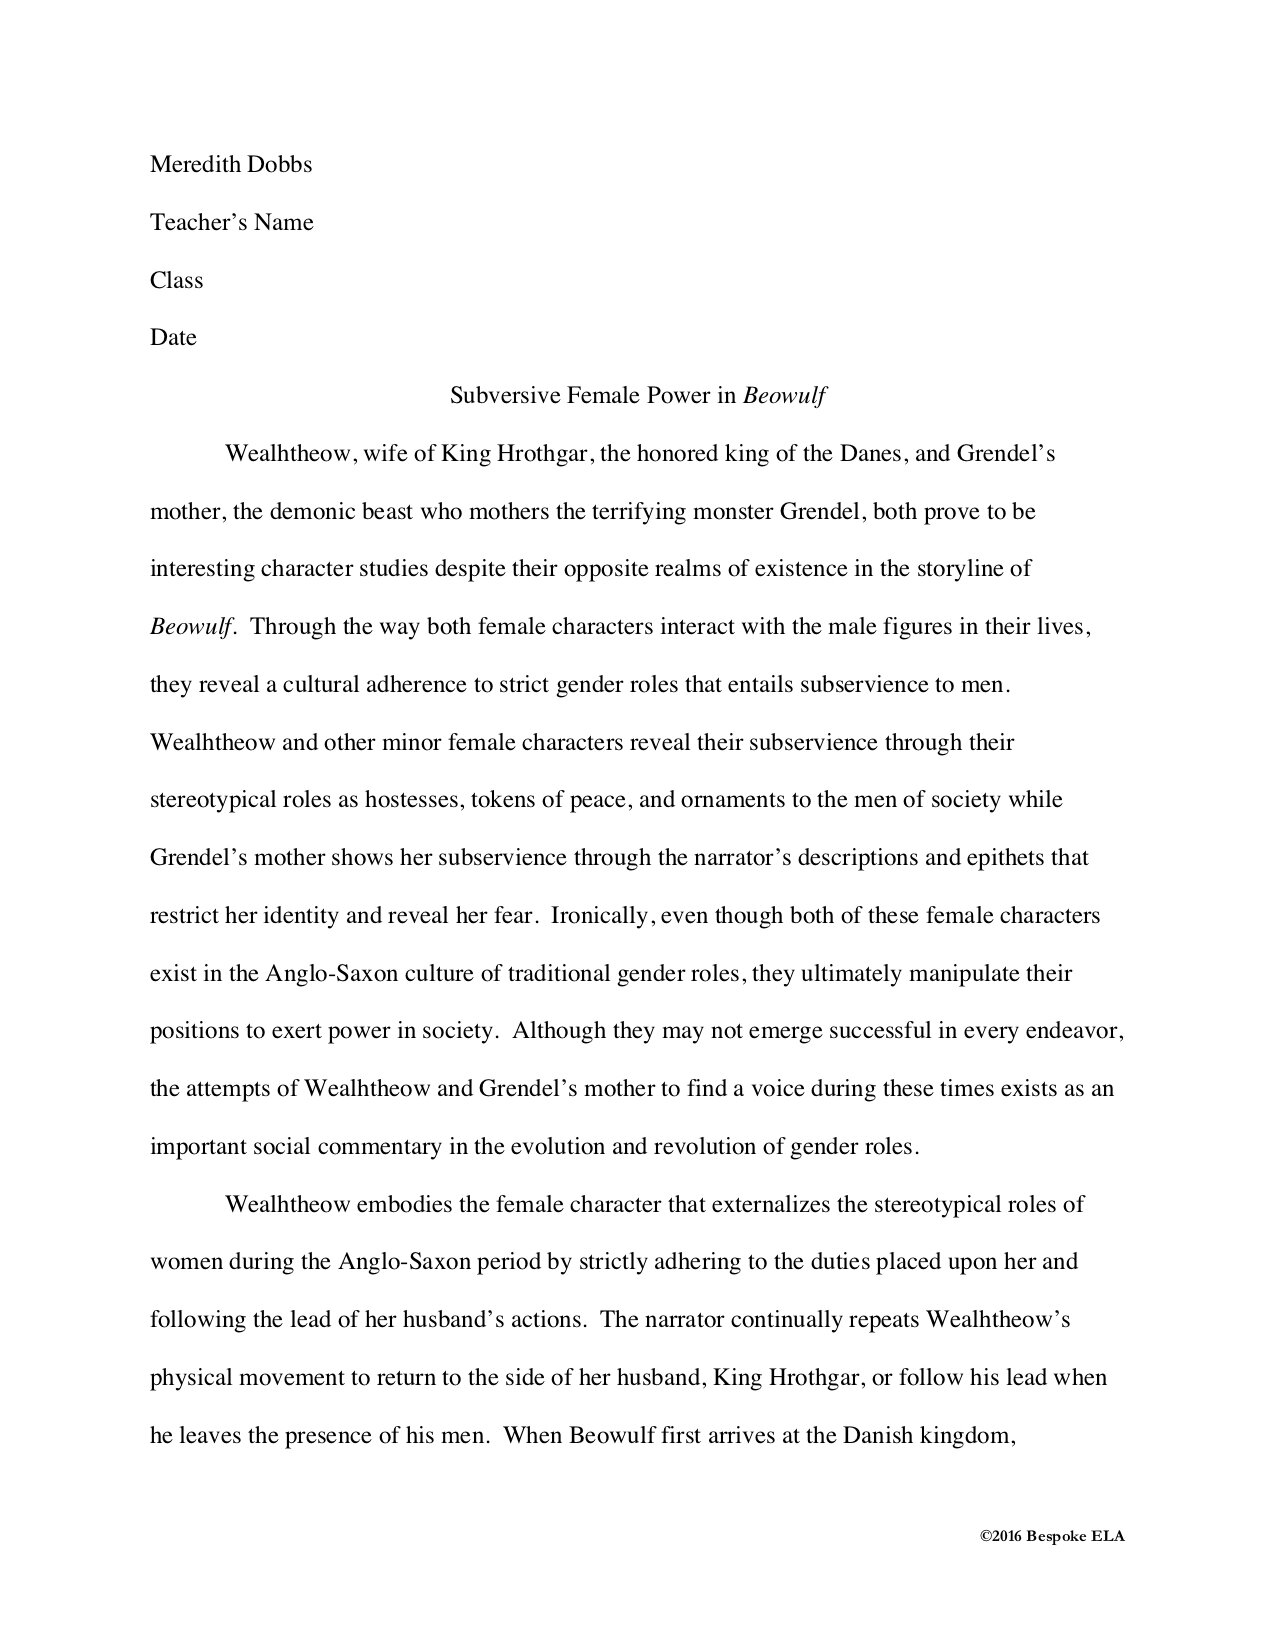 How To Sequence A Literary Analysis Essay Unit — Bespoke ELA: Essay Writing  Tips + Lesson Plans